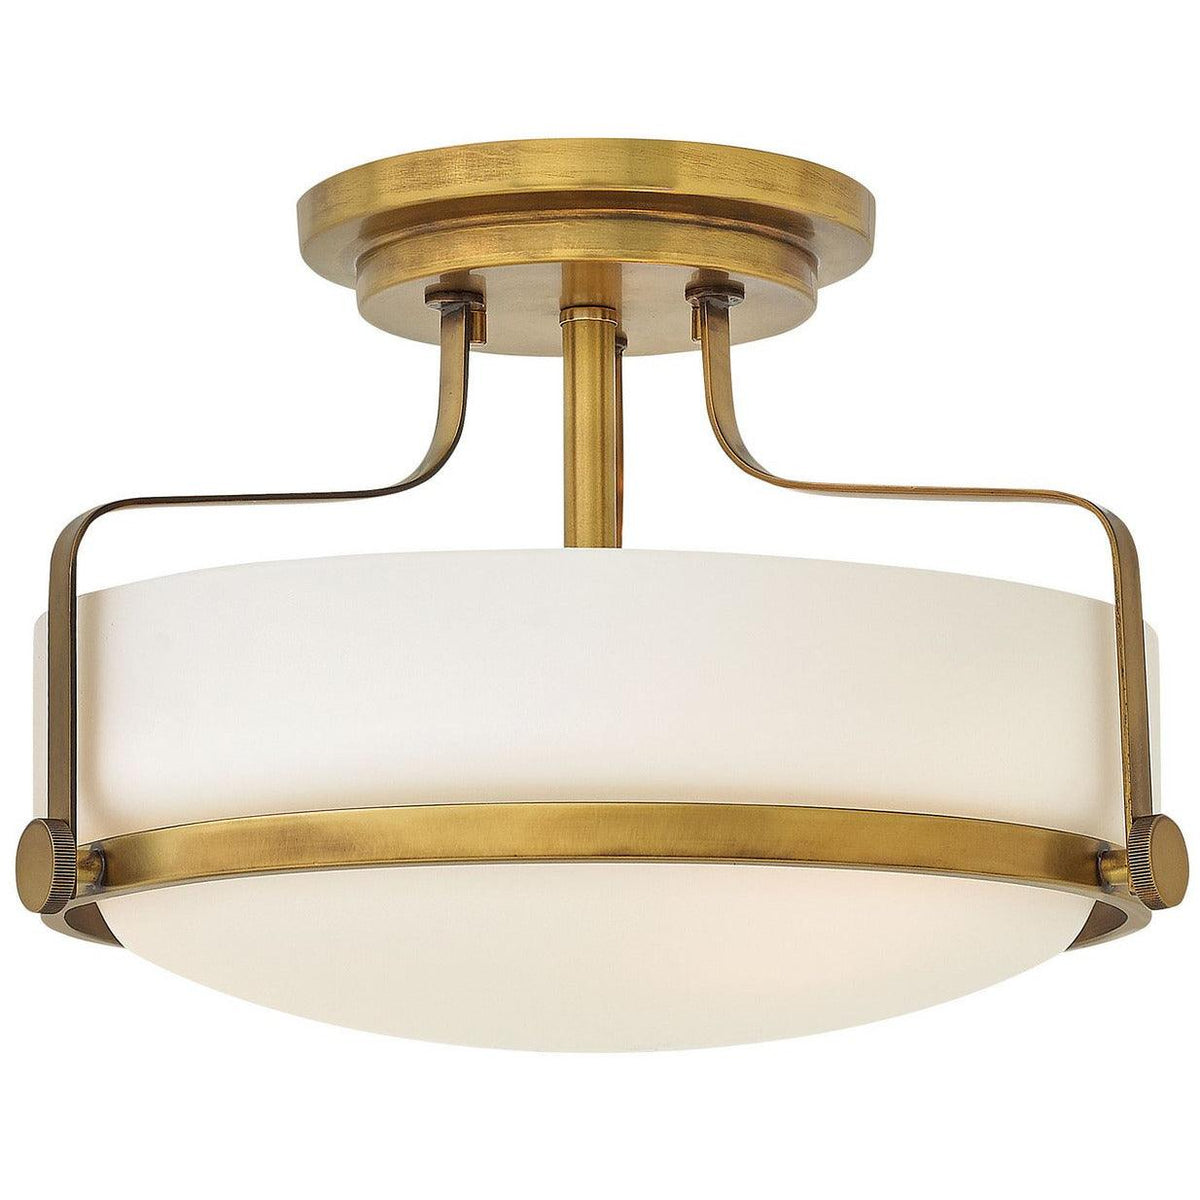 Hinkley Canada - 3641HB - Three Light Flush Mount - Harper - Heritage Brass